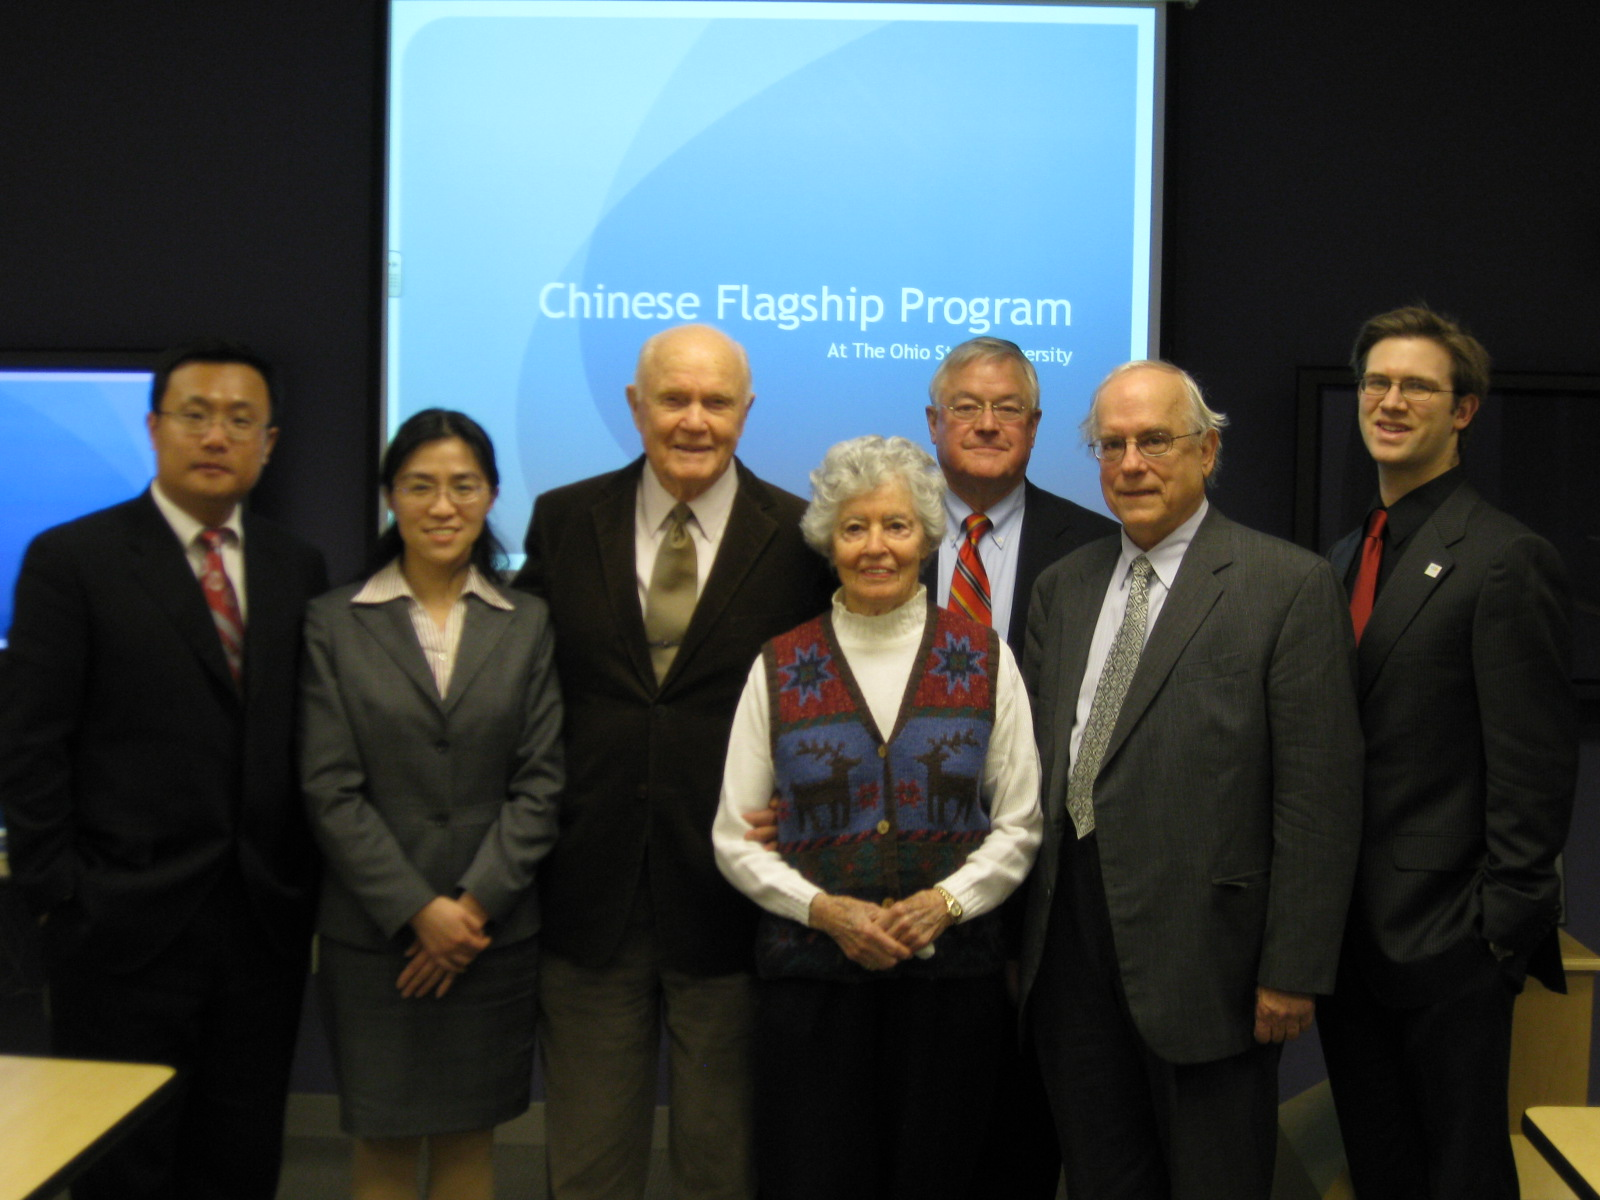 John & Annie Glenn visited Chinese Flagship